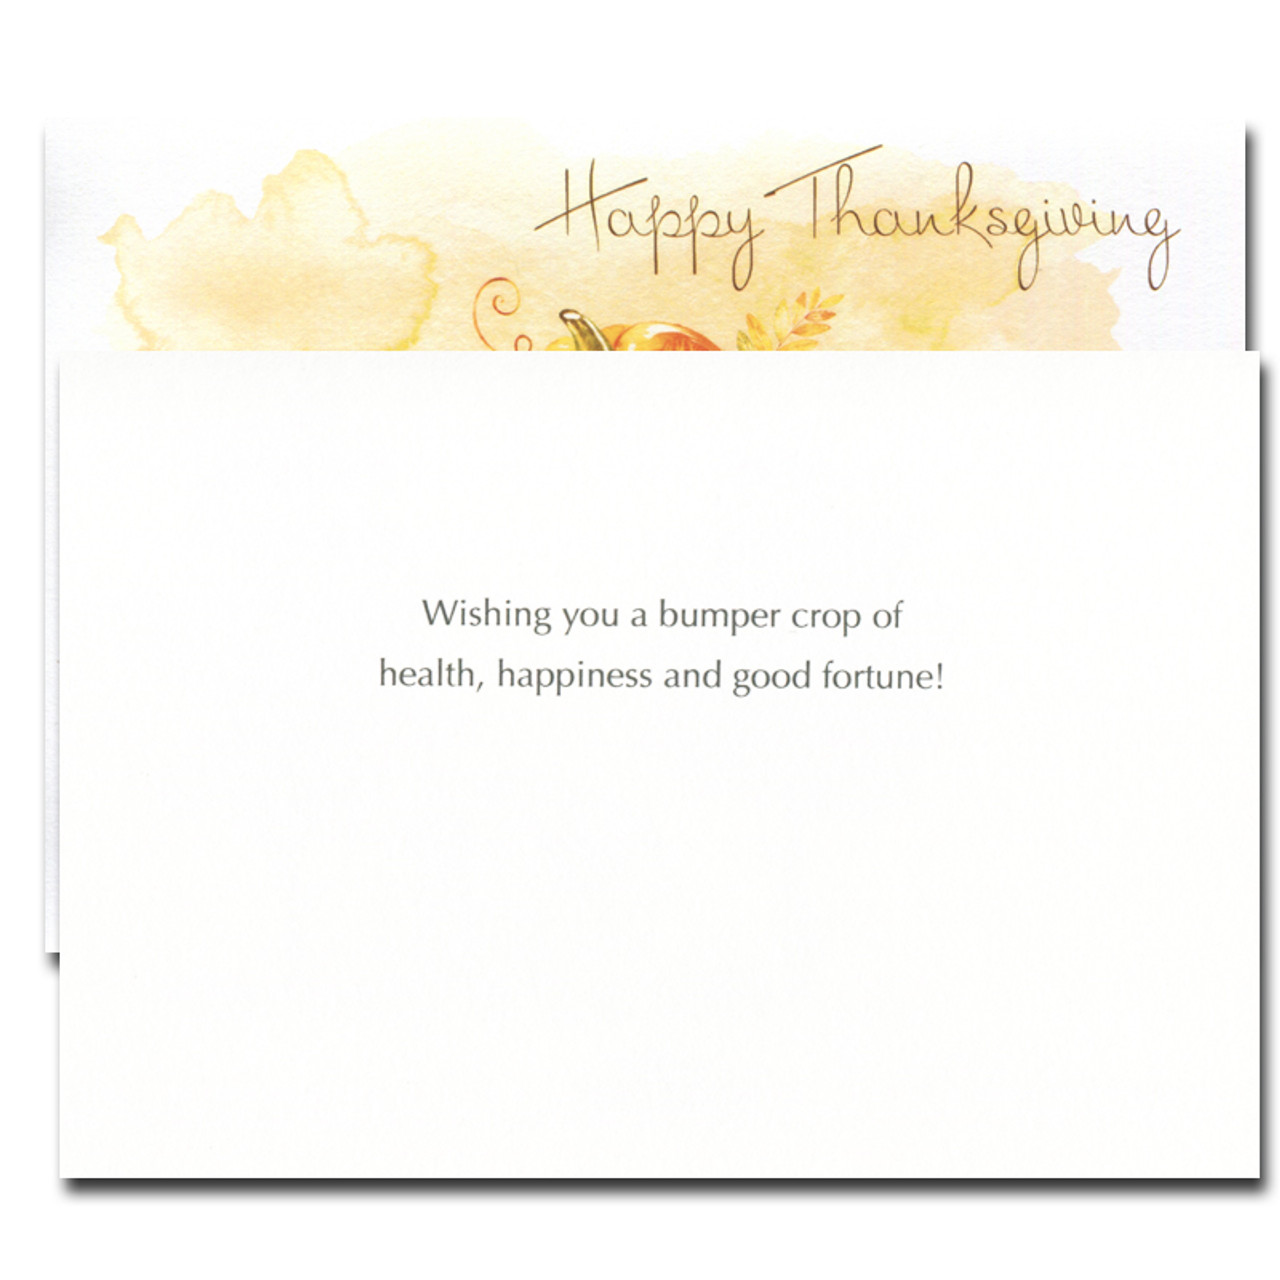 Bumper Crop Thanksgiving card inside reads: Wishing you a bumper crop of health, happiness and good fortune!